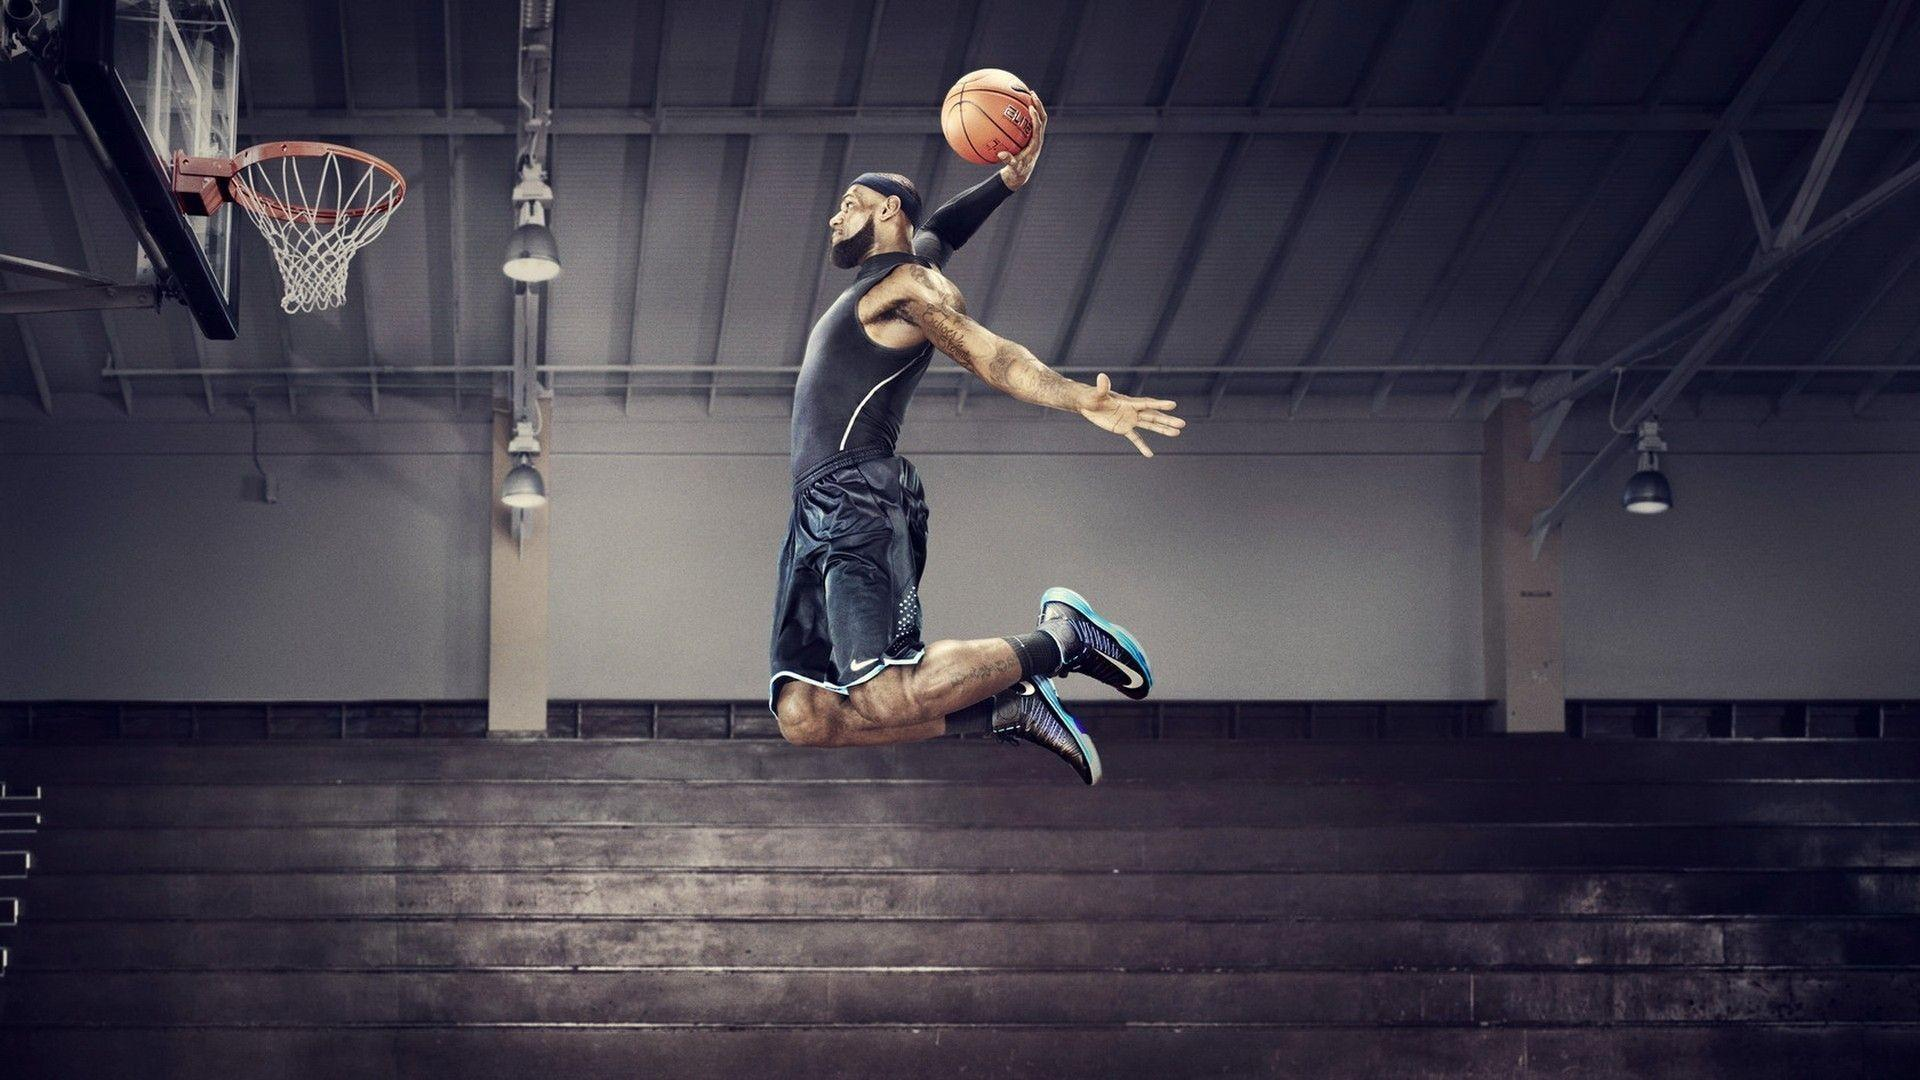 lebron james dunk wallpapers – 1920×1080 High Definition Wallpapers